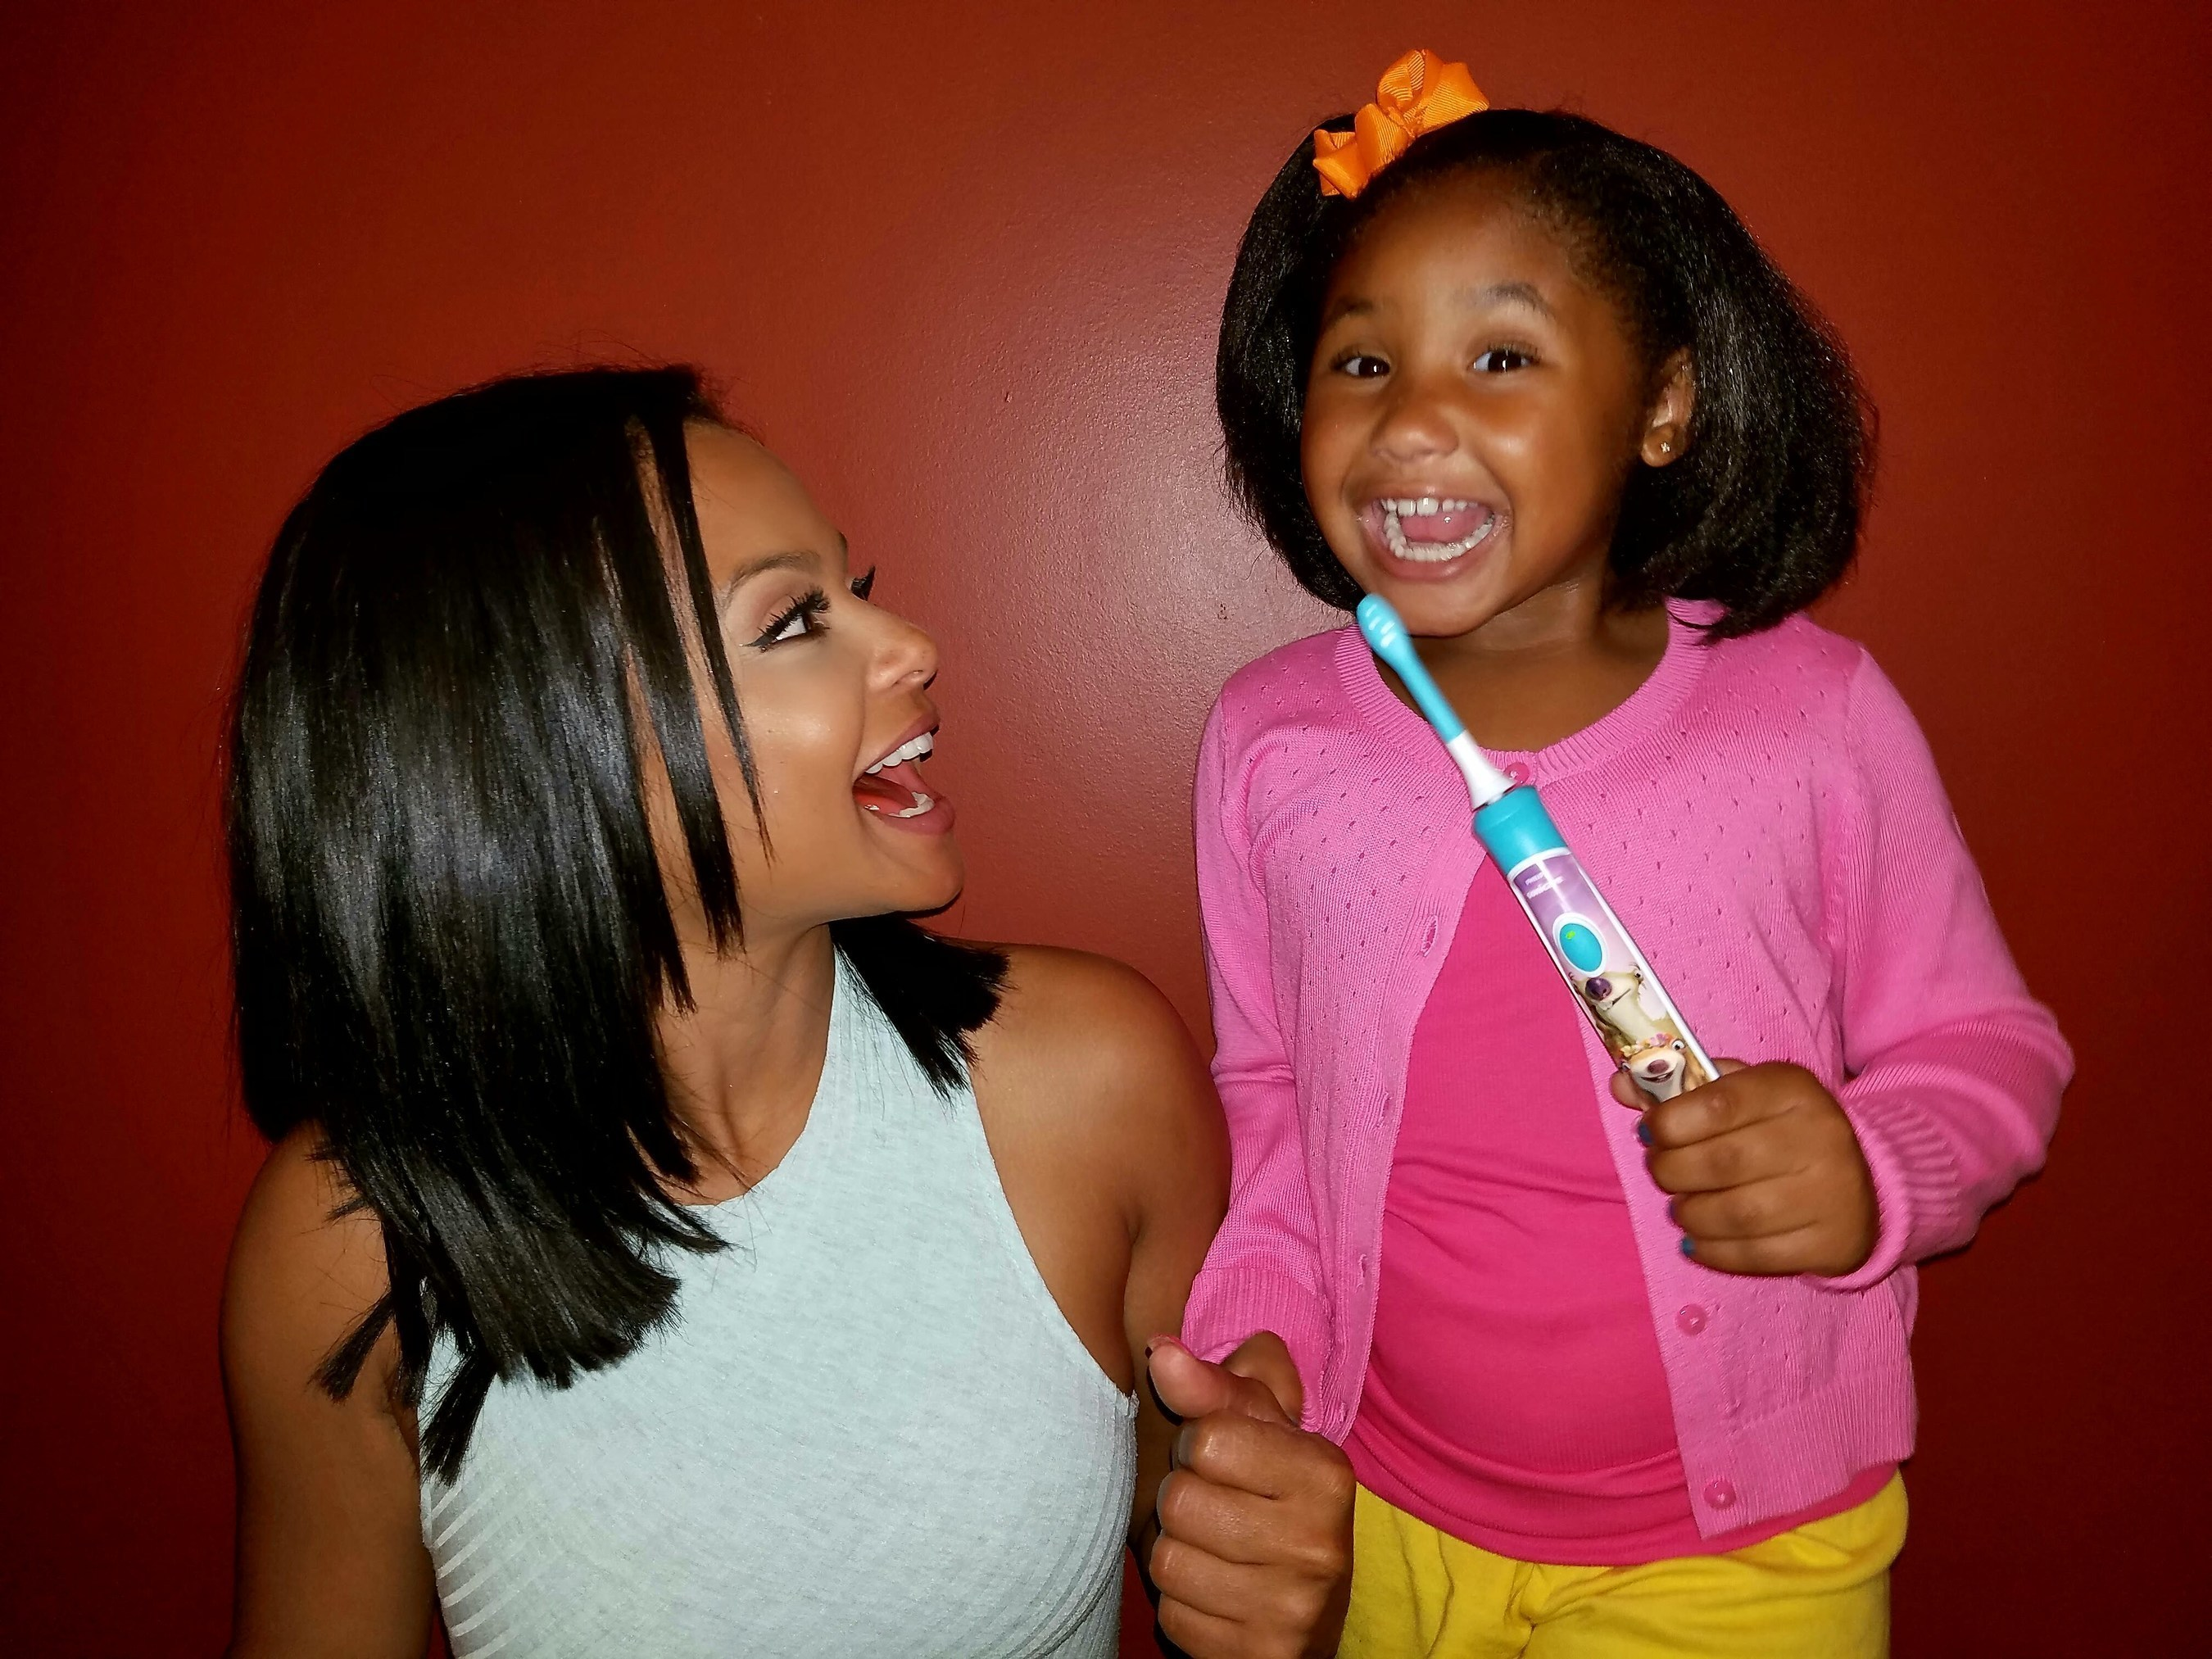 Christina Milian Helps Daughter Violet Develop Healthy Habits for Life with Philips Sonicare For Kids Ice Age: Collision Course